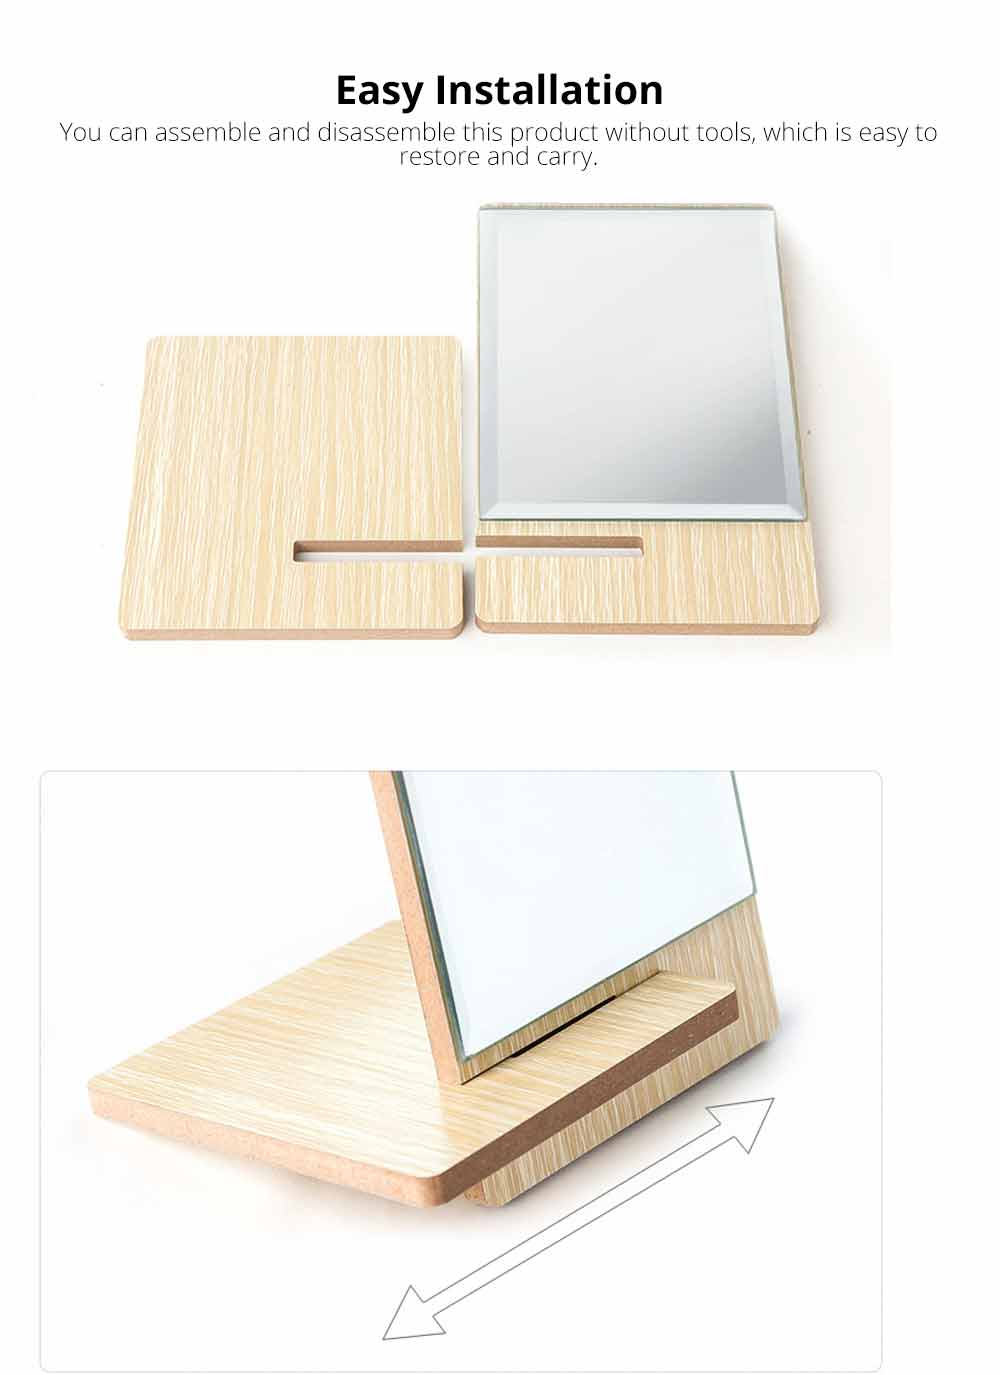 Wooden Table Top Mirror, One-Sided Makeup Mirror For Vanity, Portable Rectangle Cosmetic Mirror 4